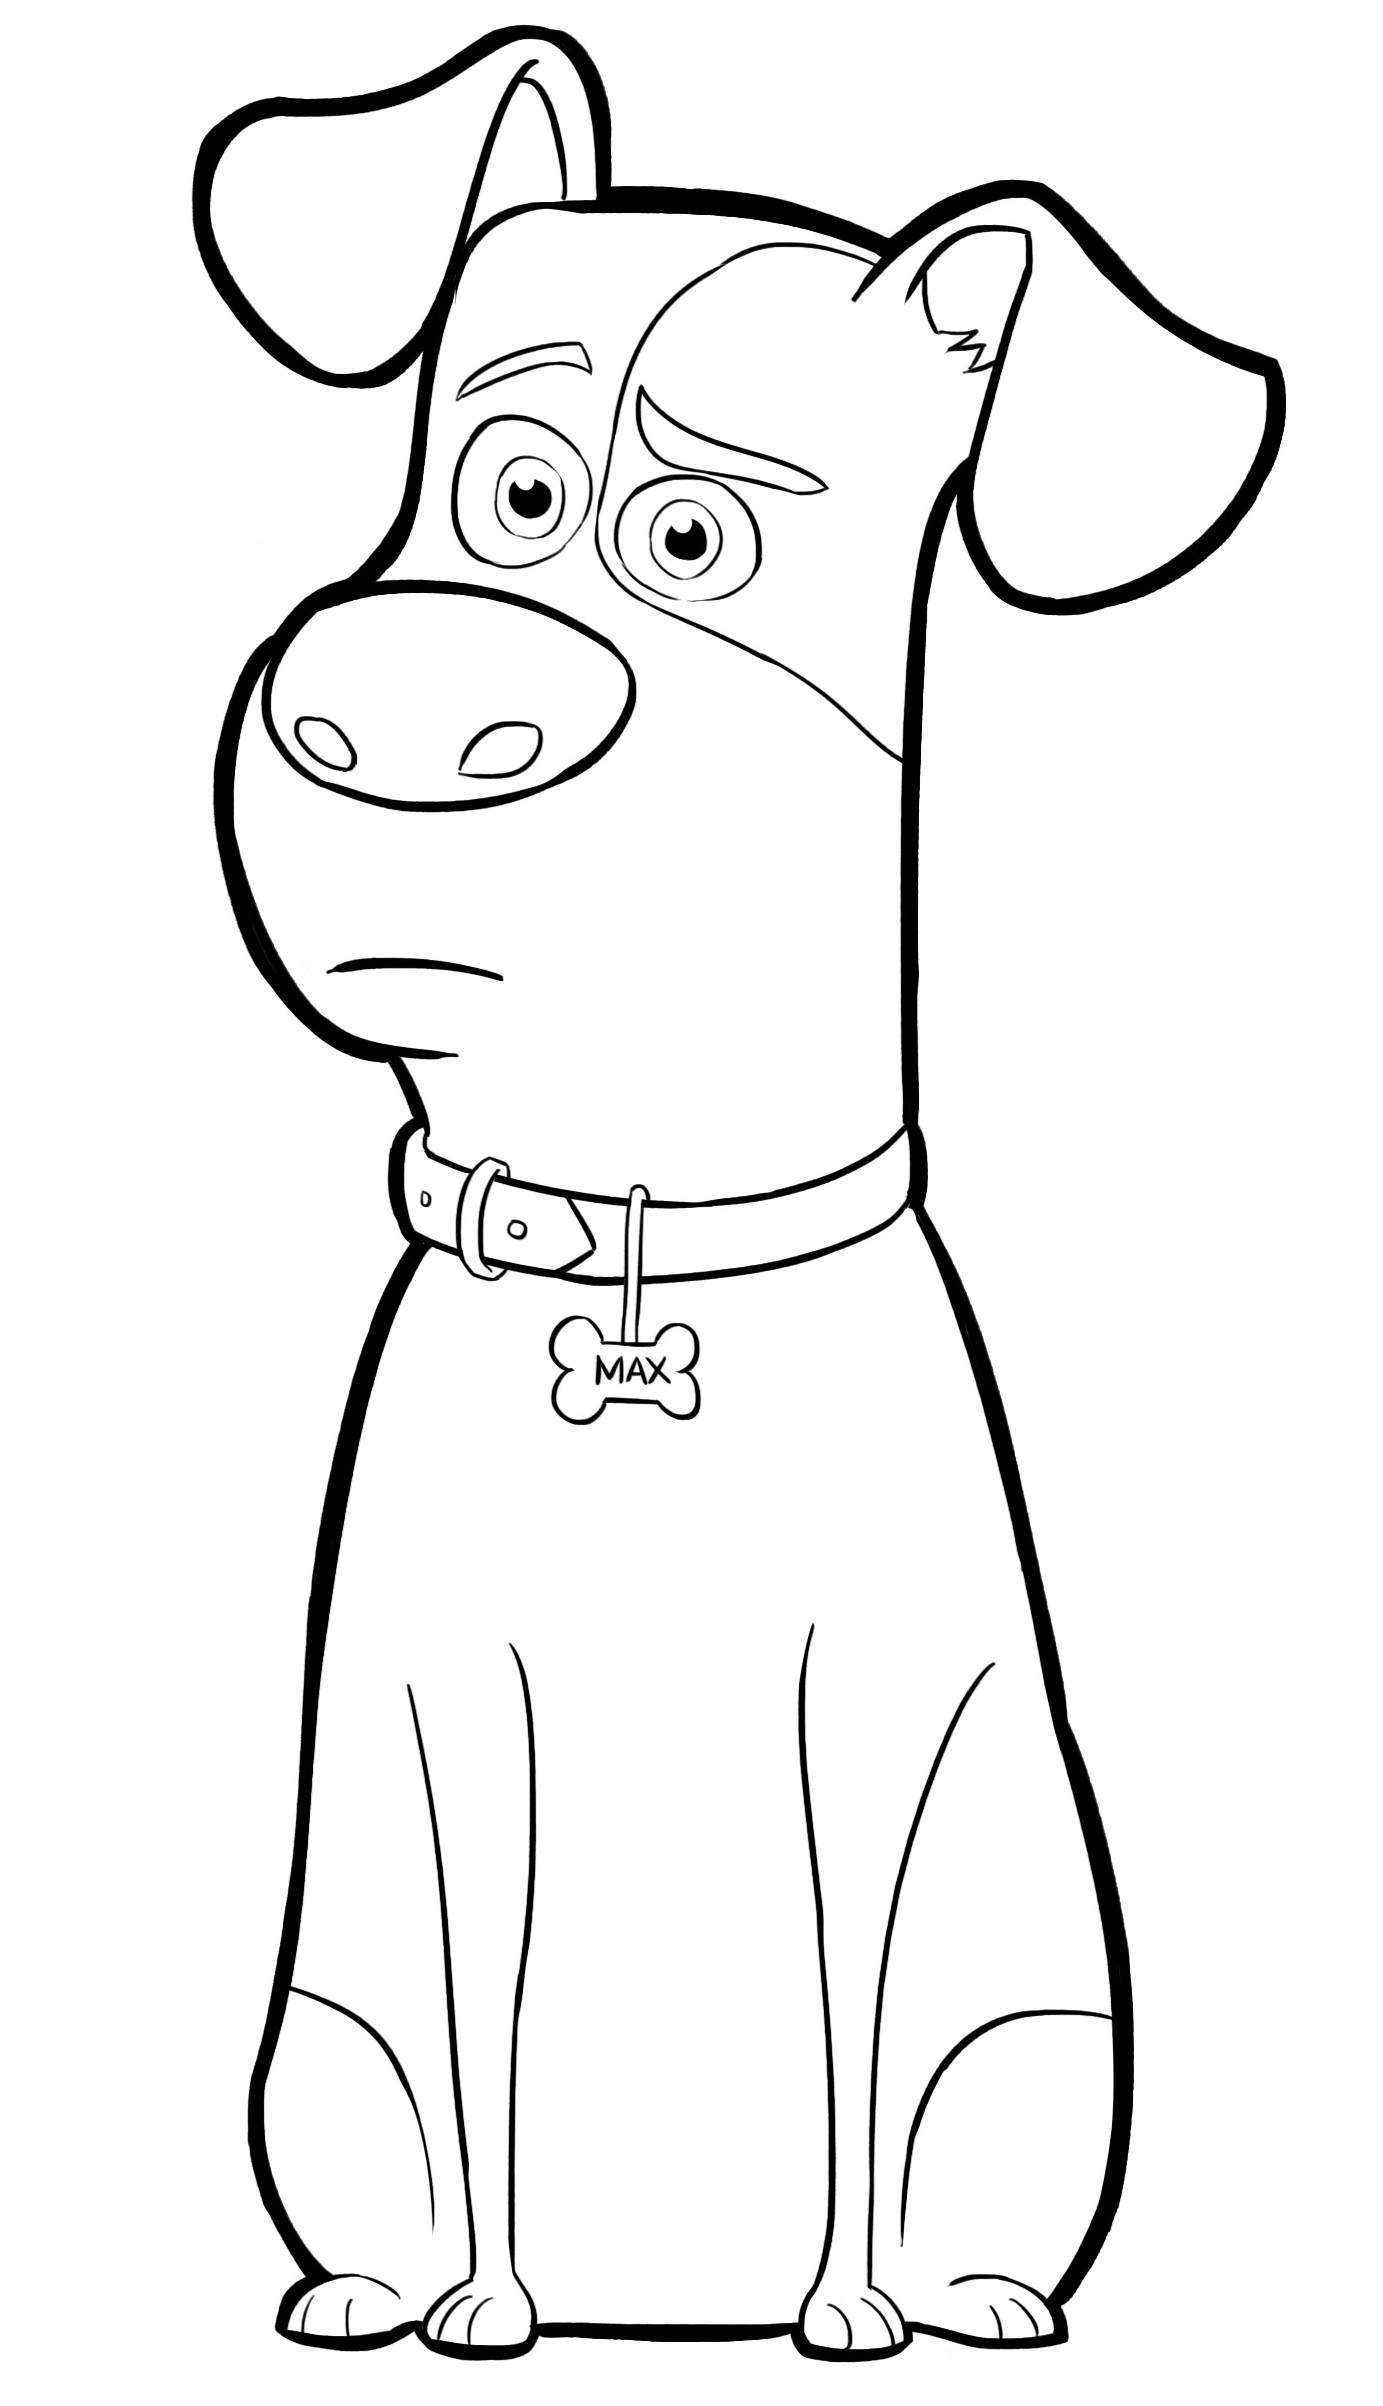 Coloring Pages For Toddler  Pets Coloring Pages Best Coloring Pages For Kids